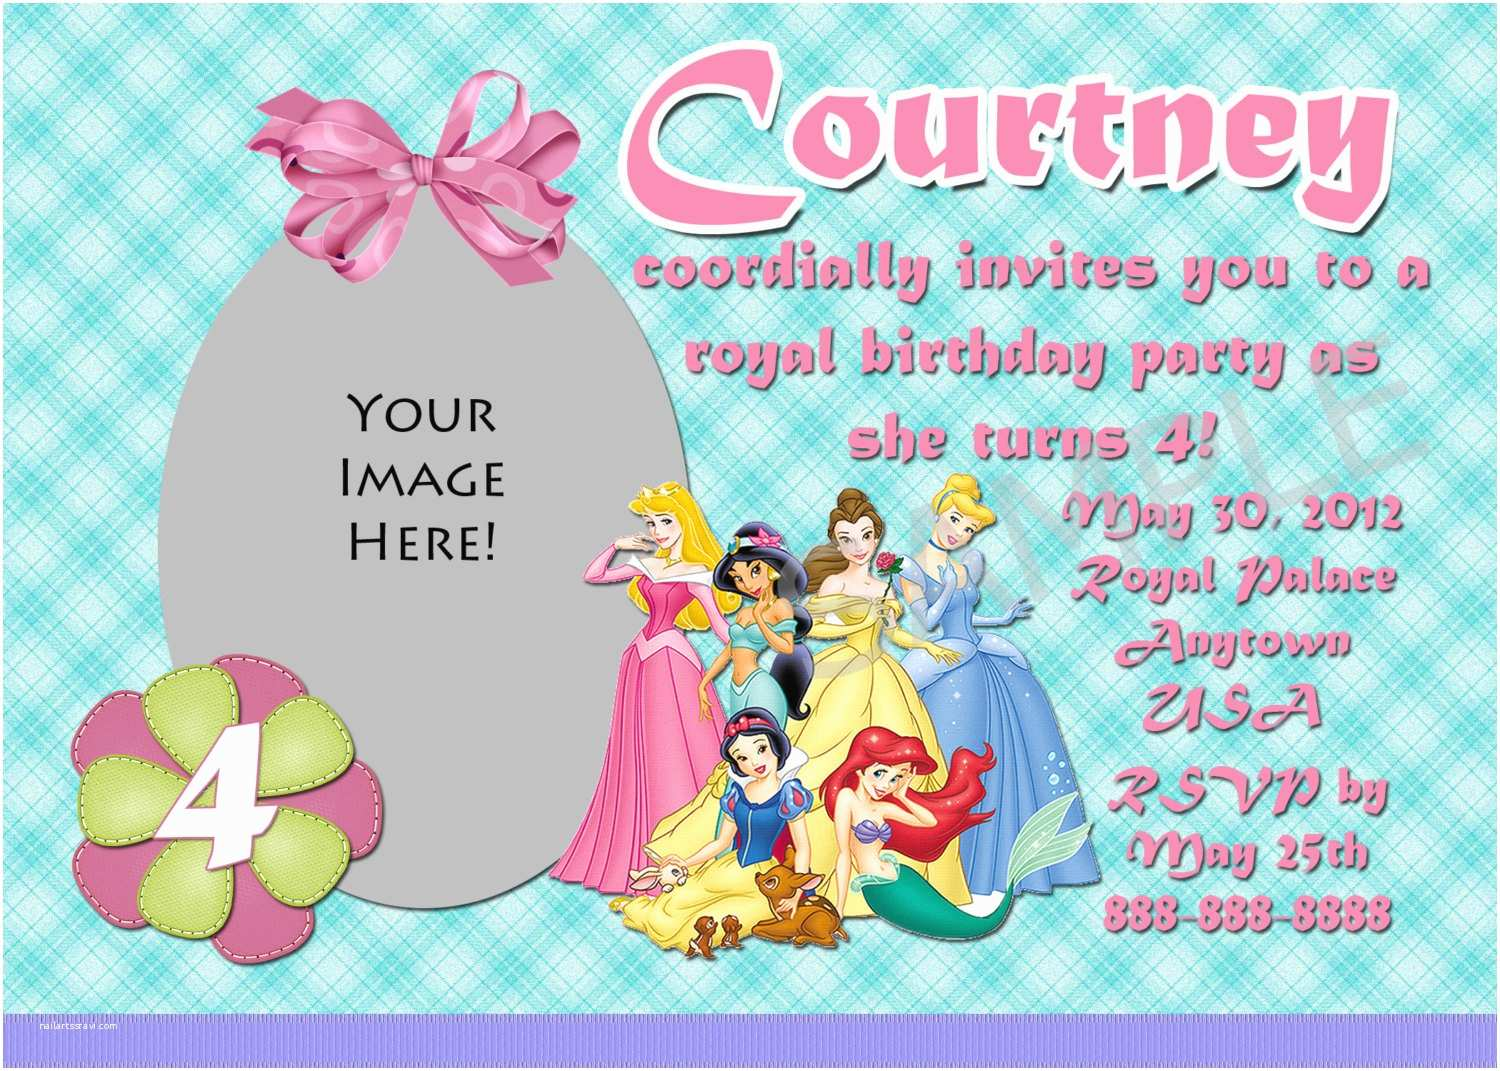 Disney Princess Birthday Invitations Disney Princess Birthday Invitation